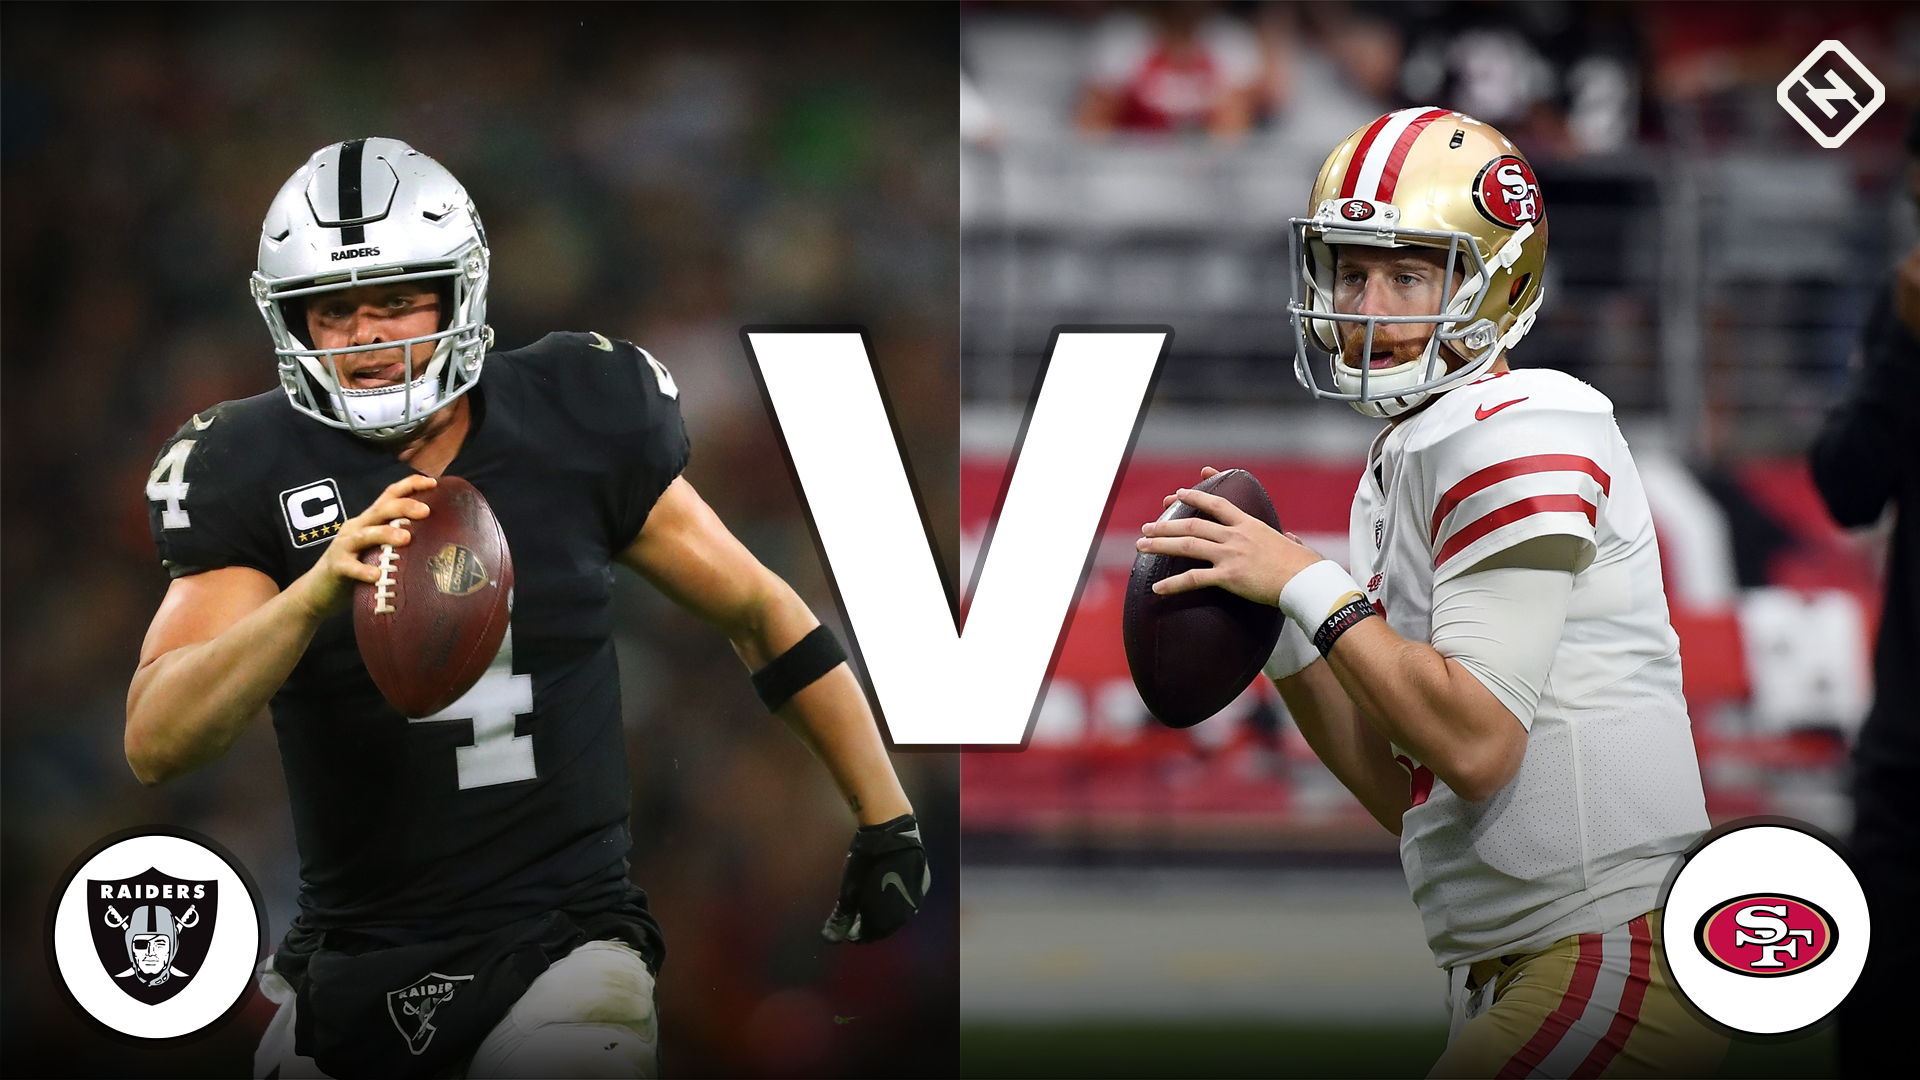 Raiders vs. 49ers: Time, TV channel, how to watch online ...